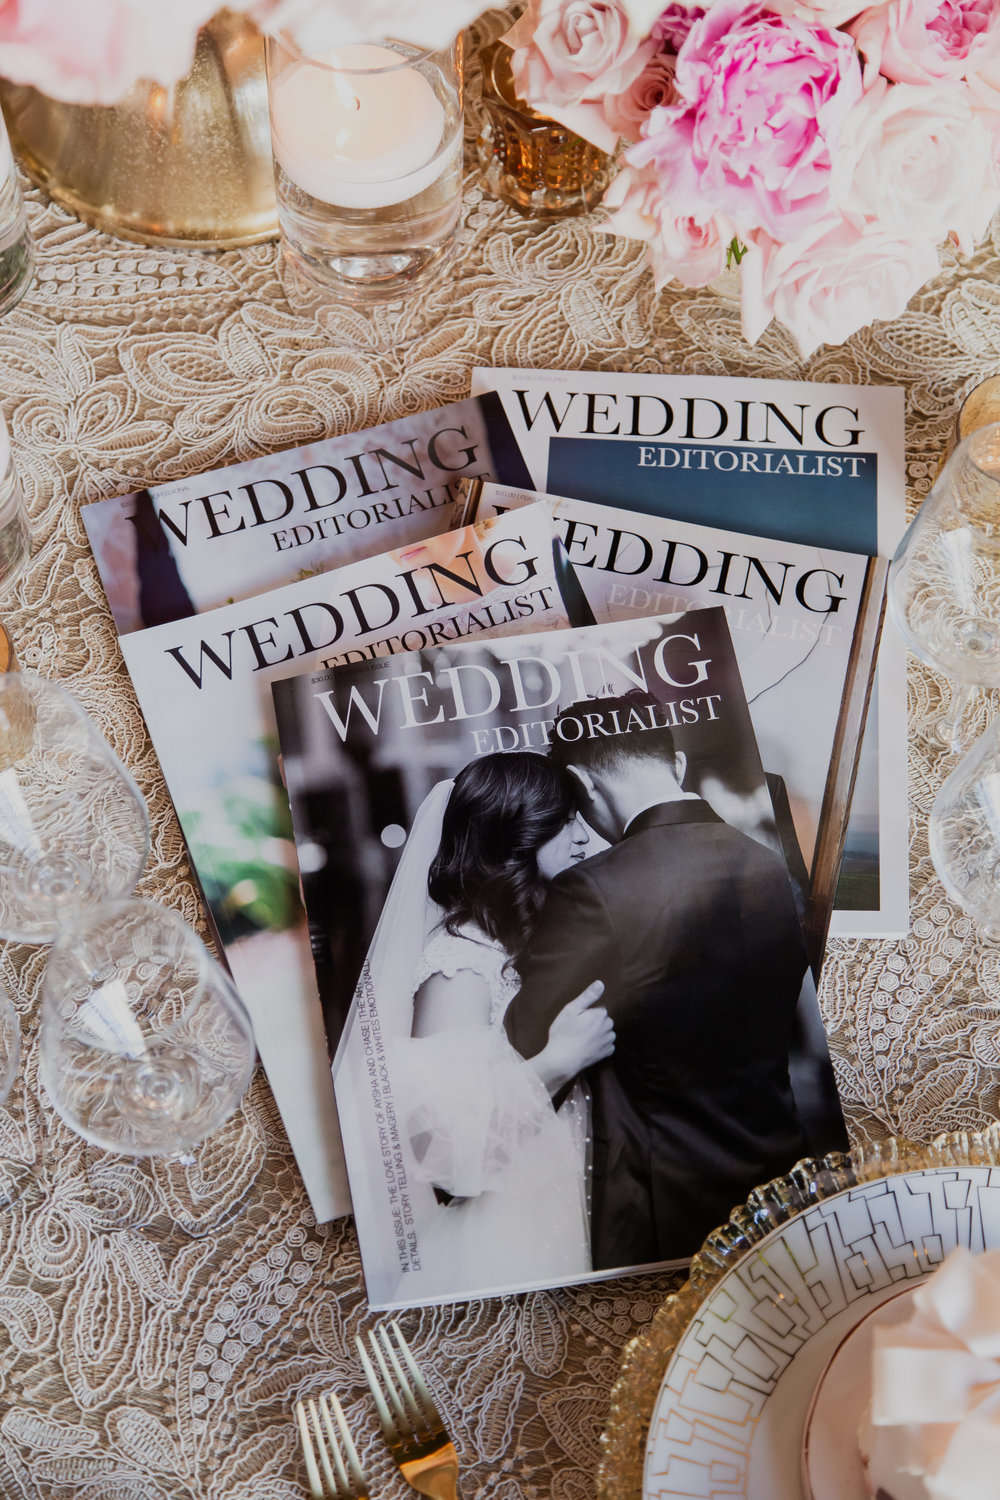 Check out these custom wedding magazines!The Wedding Editorialist will feature your wedding from cover to cover! High gloss, beautifully bound, and in full color...These are the wedding feature your friends wish they had!